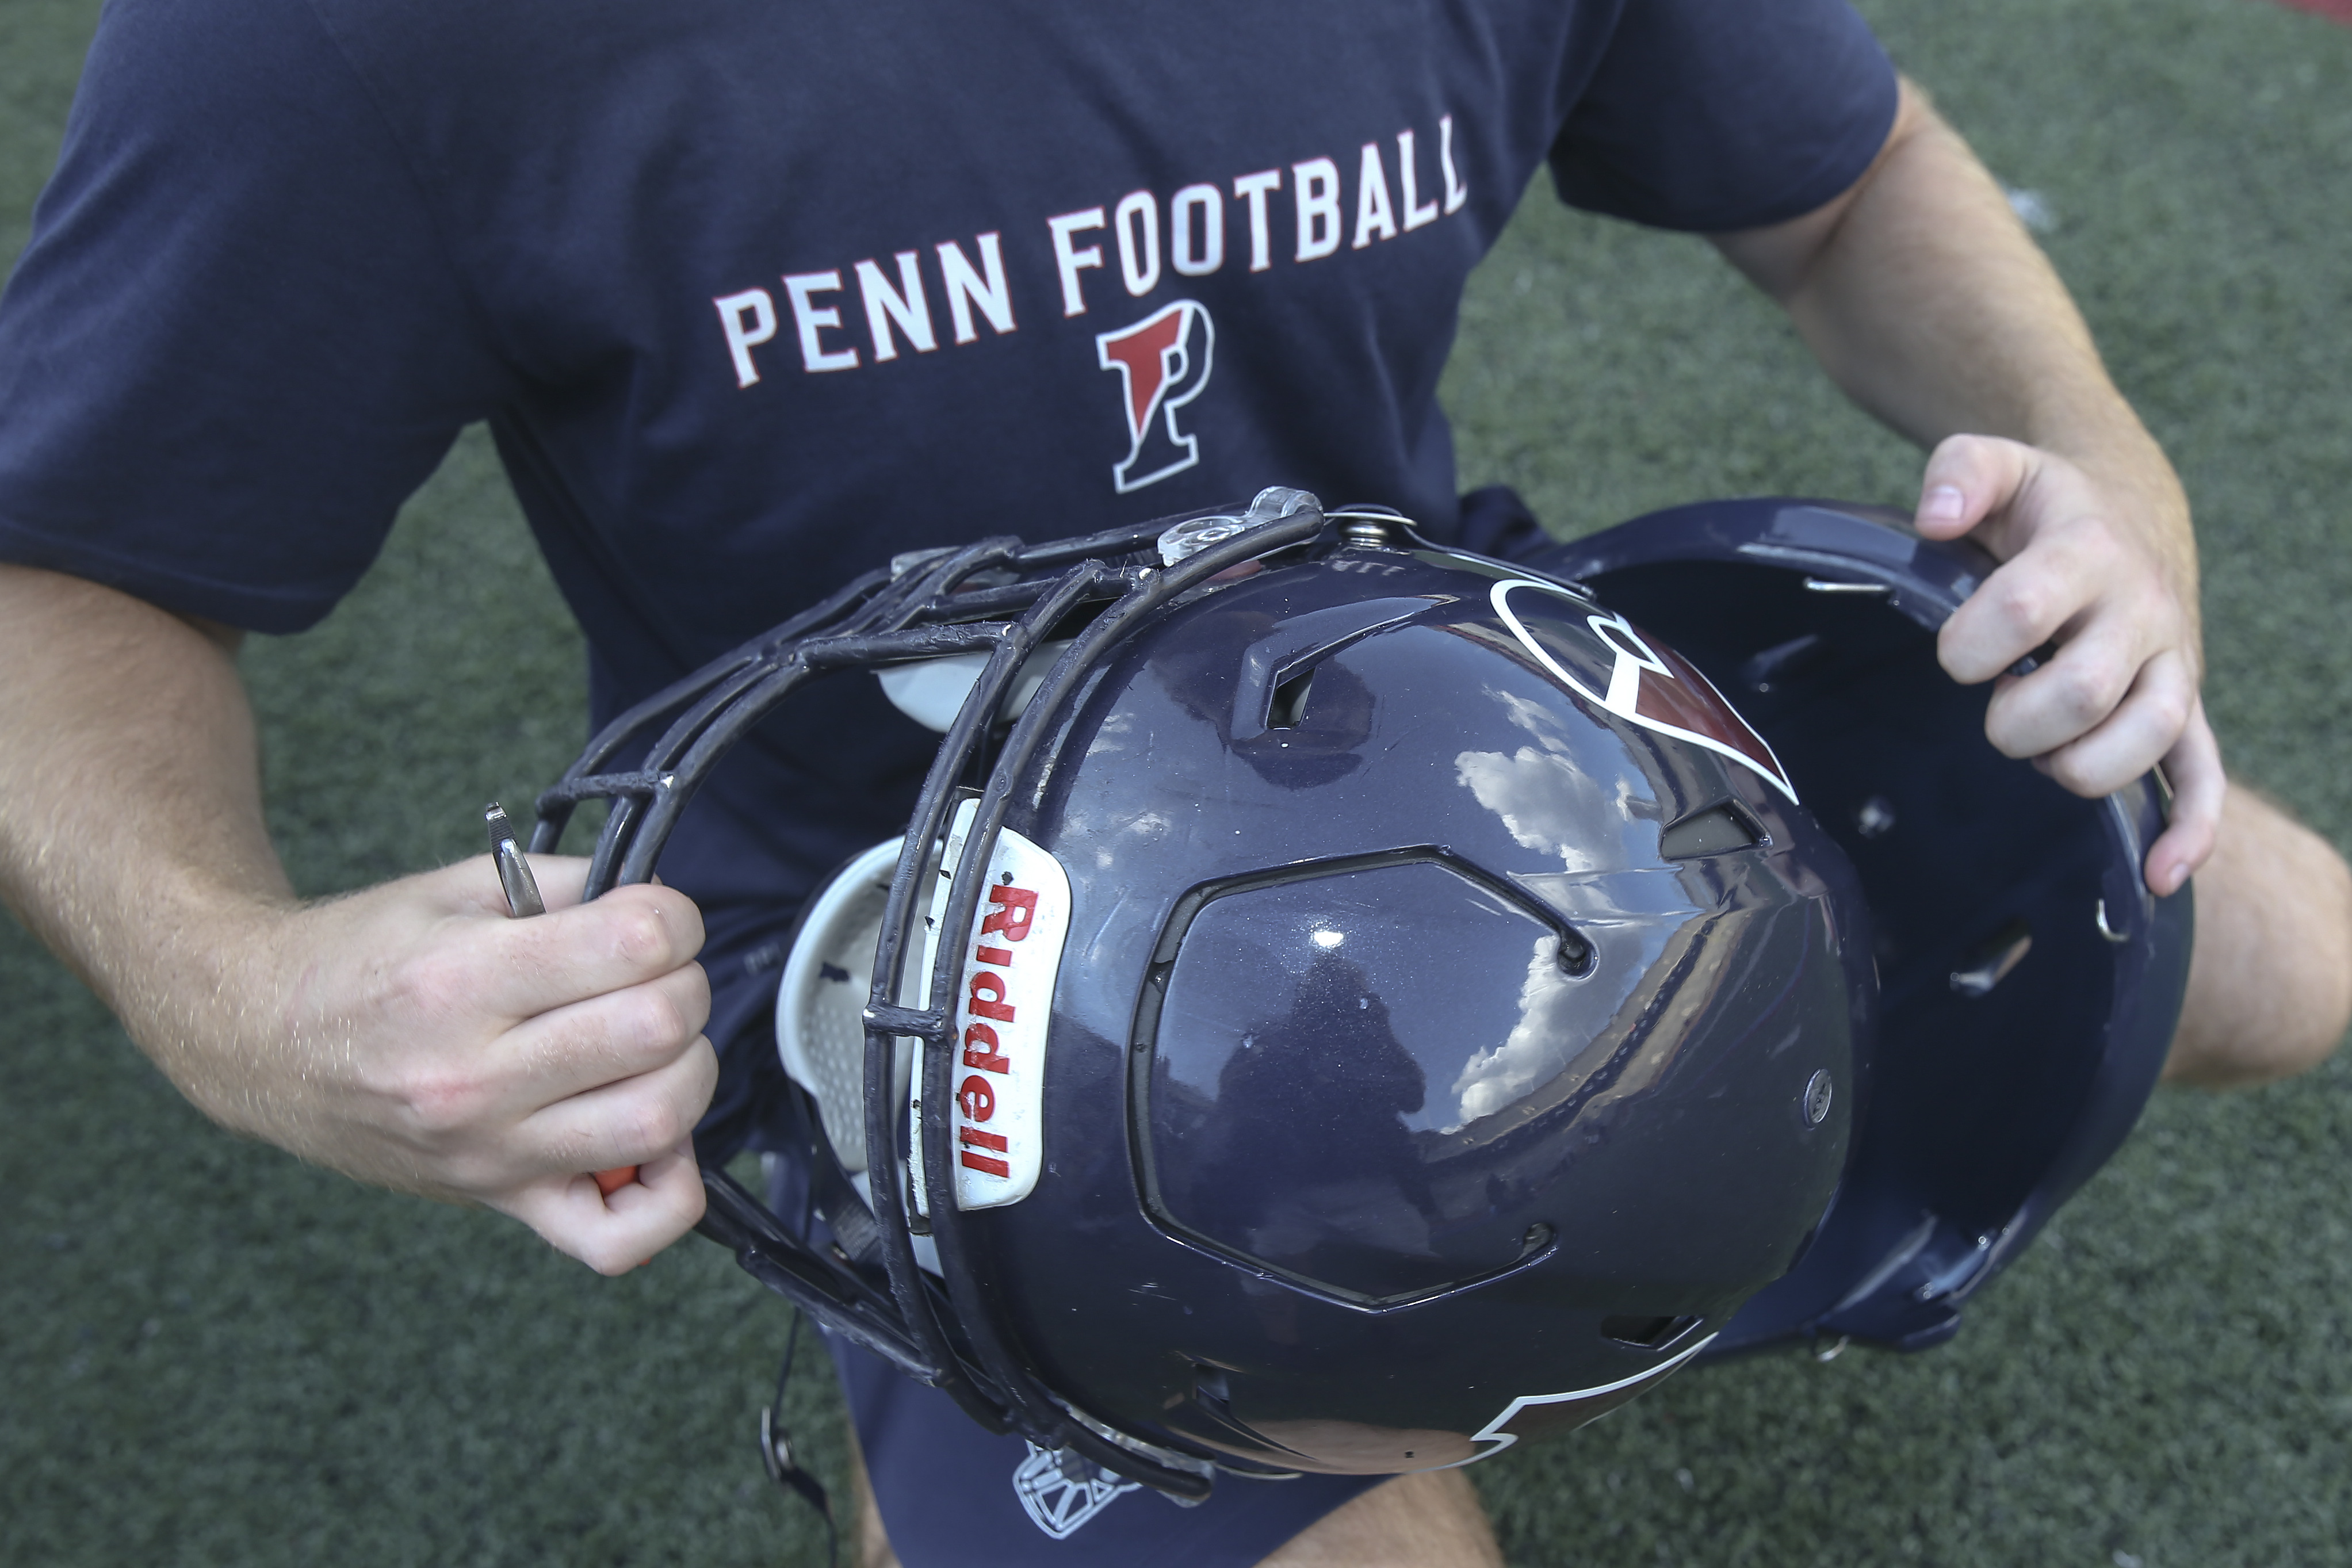 Penn´s assistant equipment manger Tyler Piccotti shows how the helmet cover comes apart after practice at Franklin Field, Thursday, August 30, 2018. STEVEN M. FALK / Staff Photographer